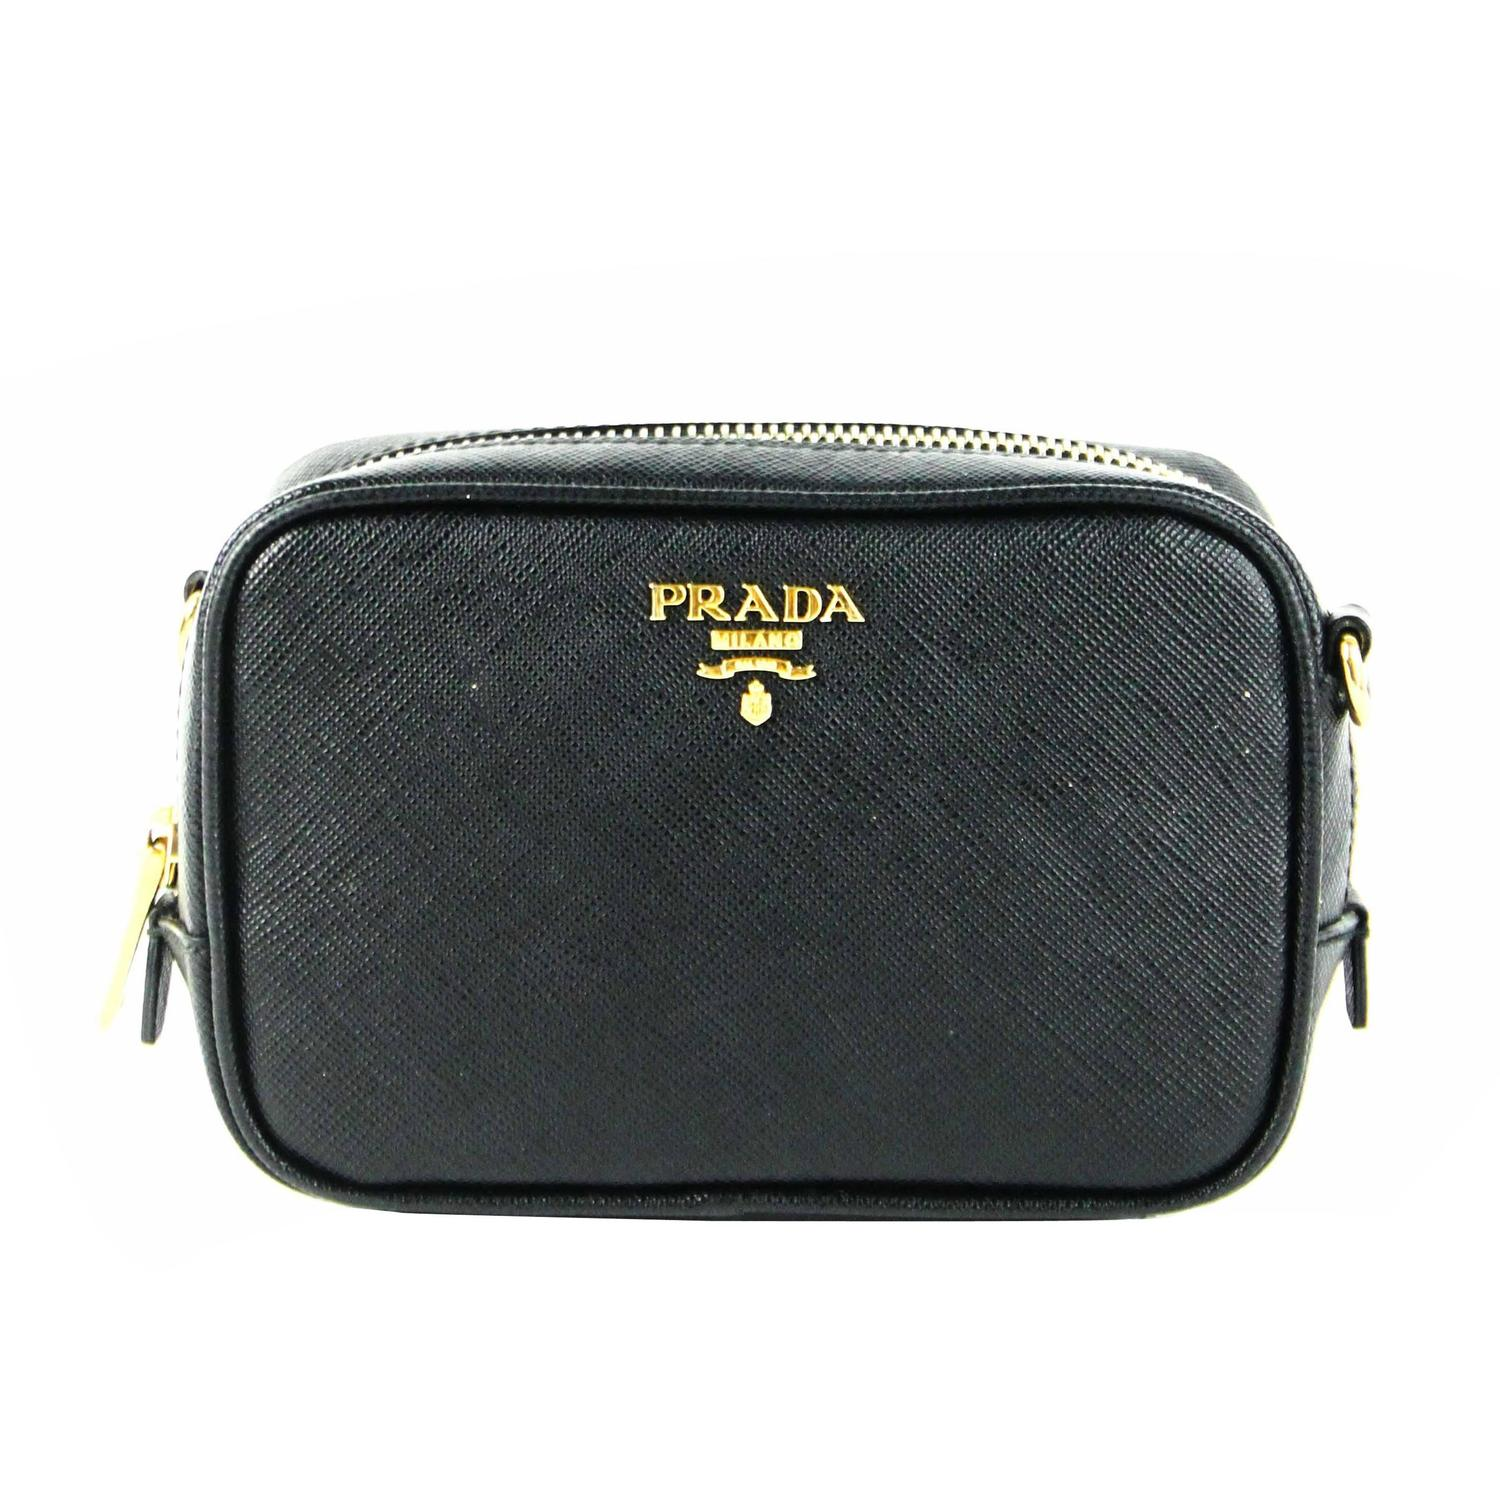 mens prada messenger bag - Vintage Prada Handbags and Purses - 117 For Sale at 1stdibs